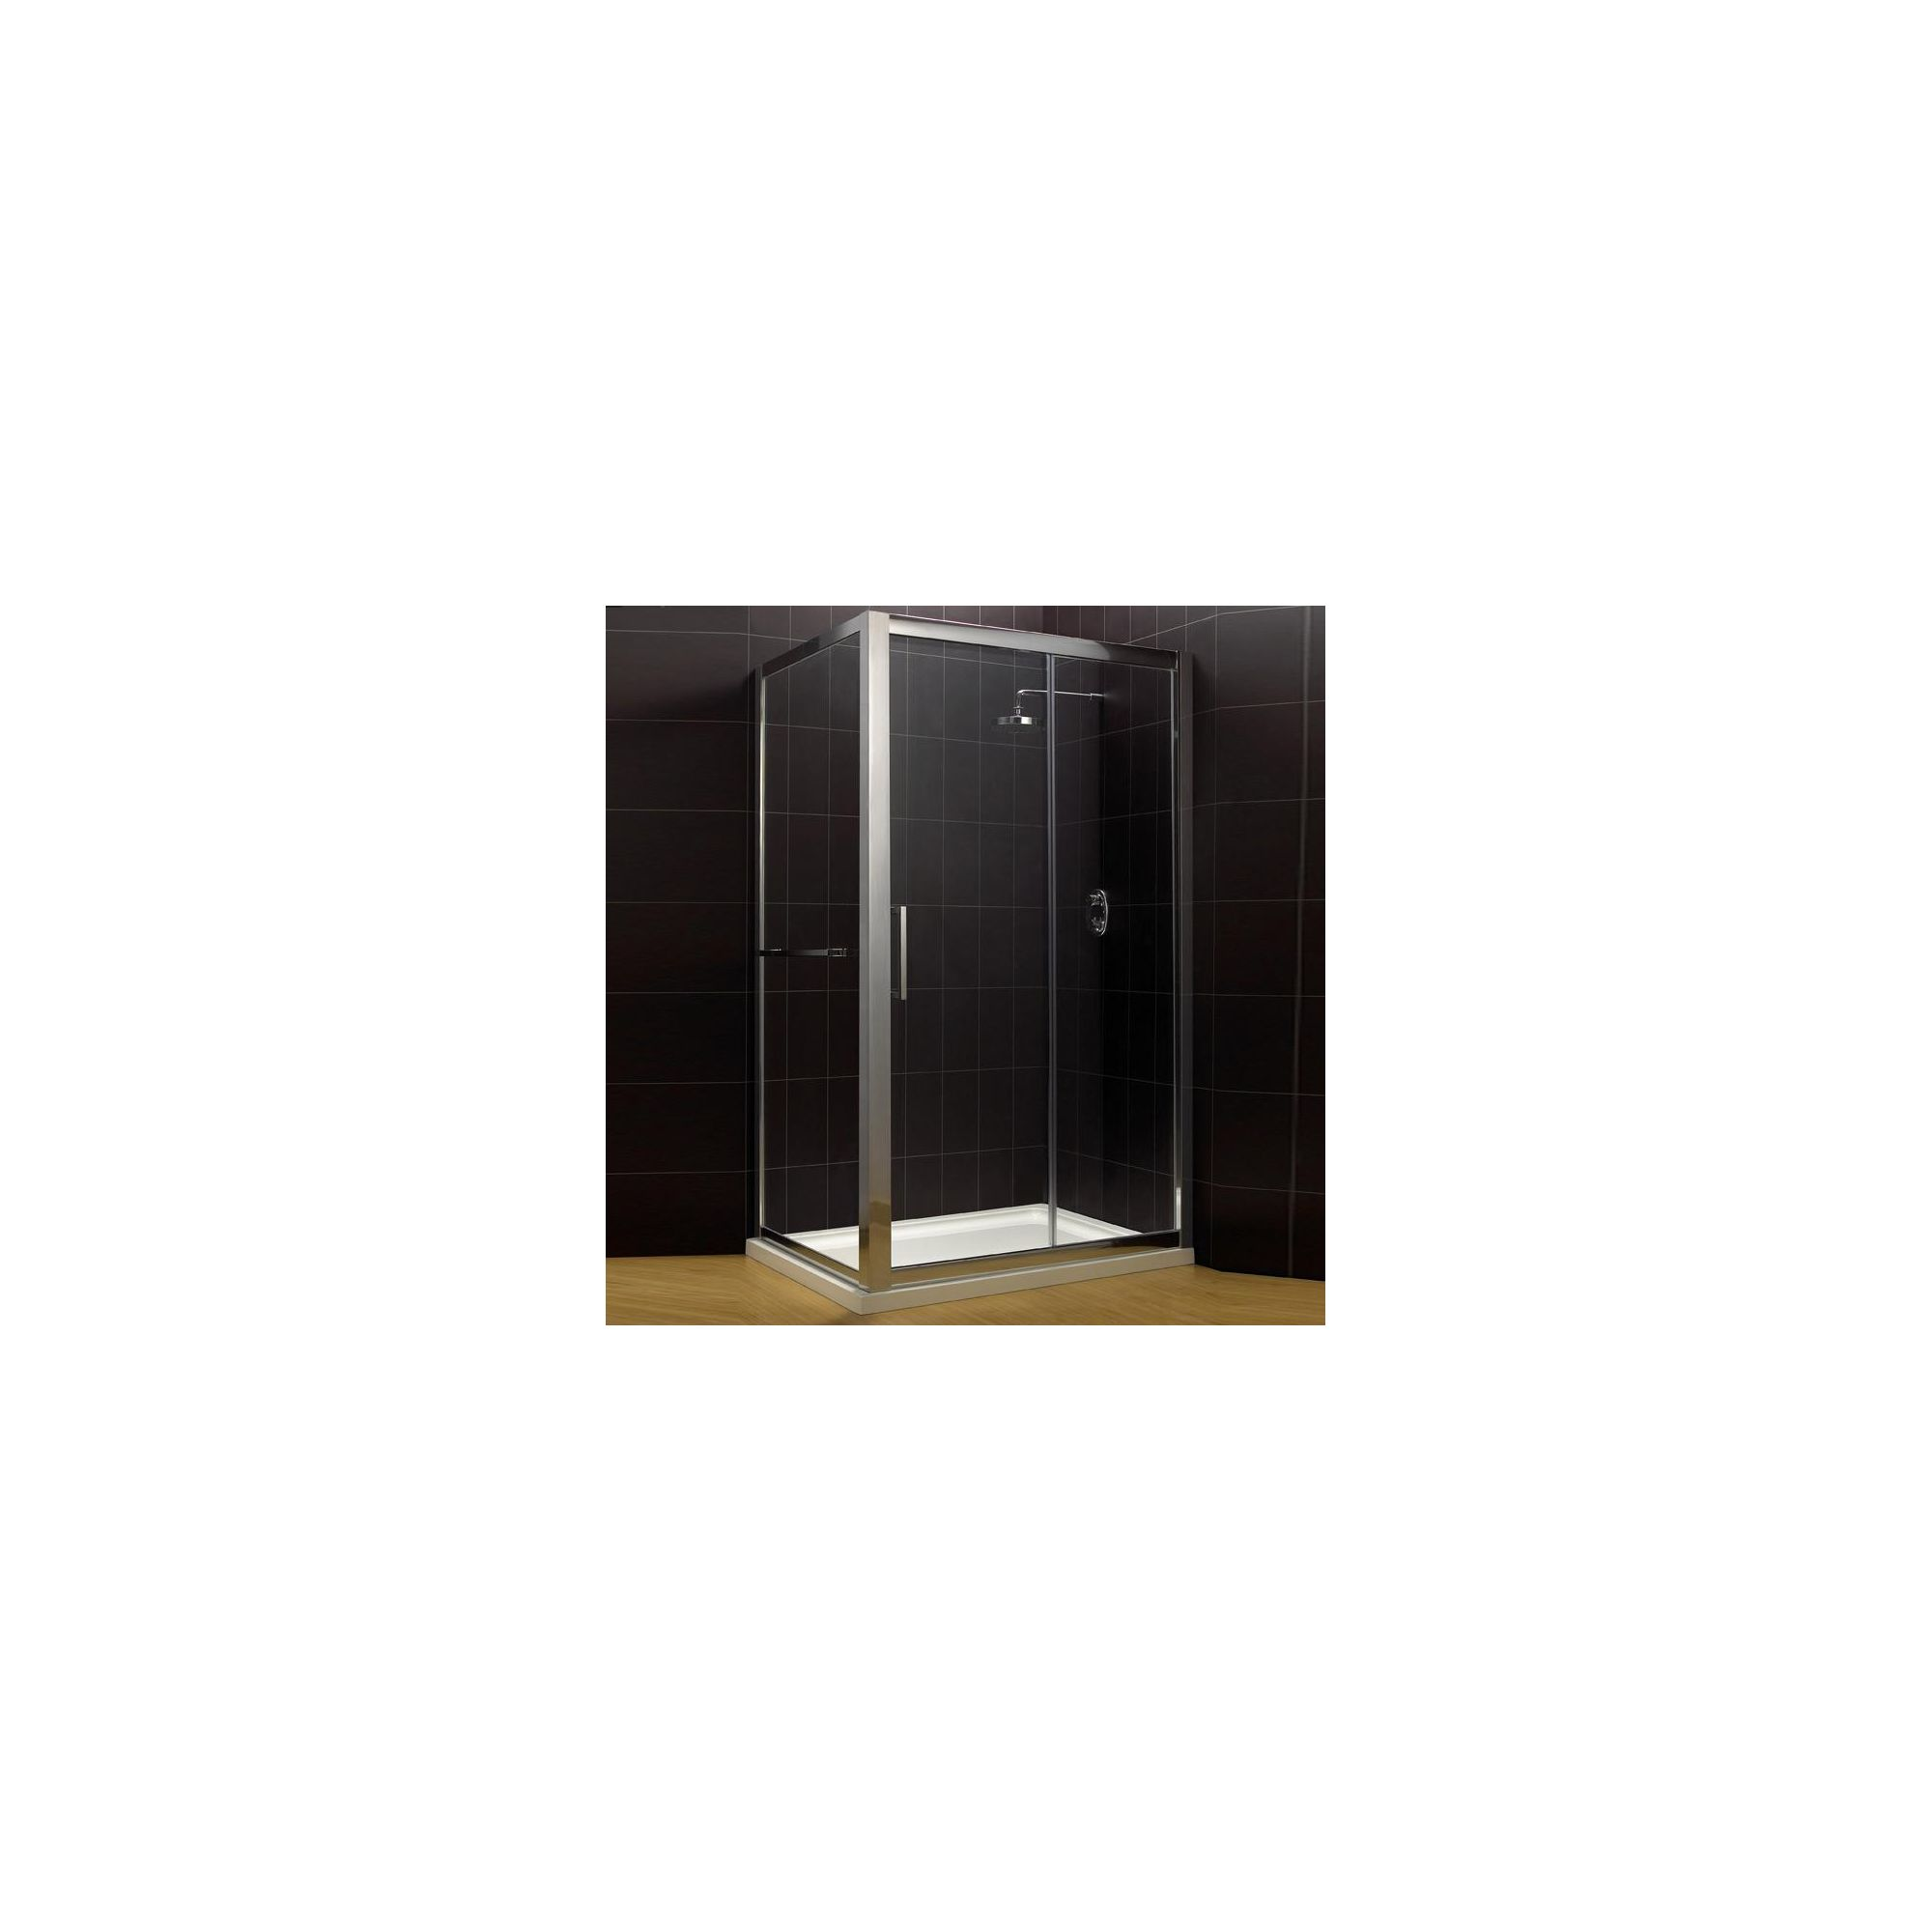 Duchy Supreme Silver Sliding Door Shower Enclosure, 1700mm x 900mm, Standard Tray, 8mm Glass at Tesco Direct